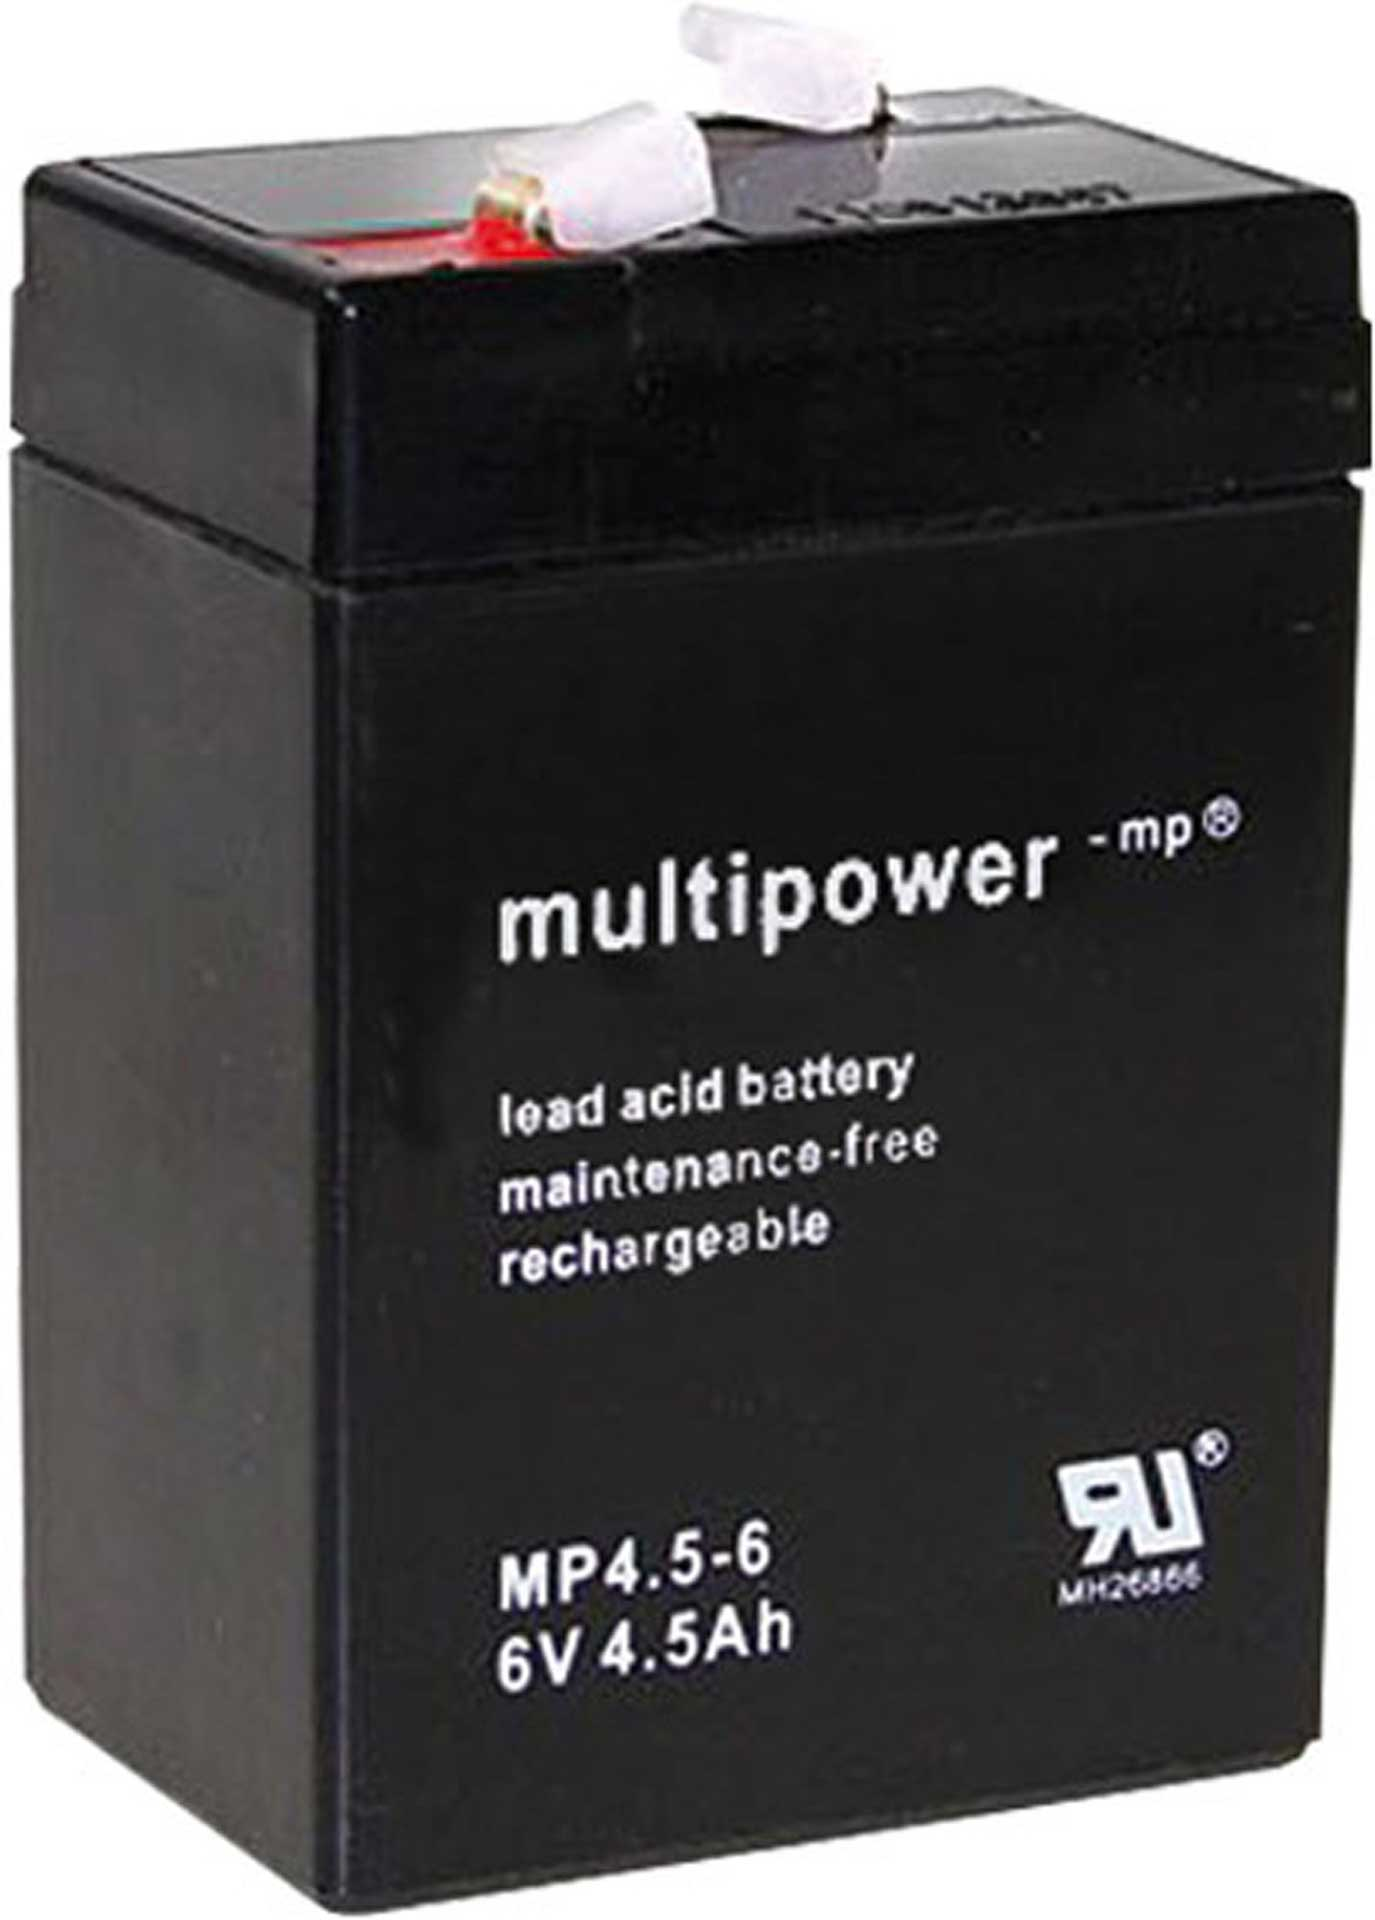 MULTIPOWER LEAD BATTERY 4,5MAH 6V MP